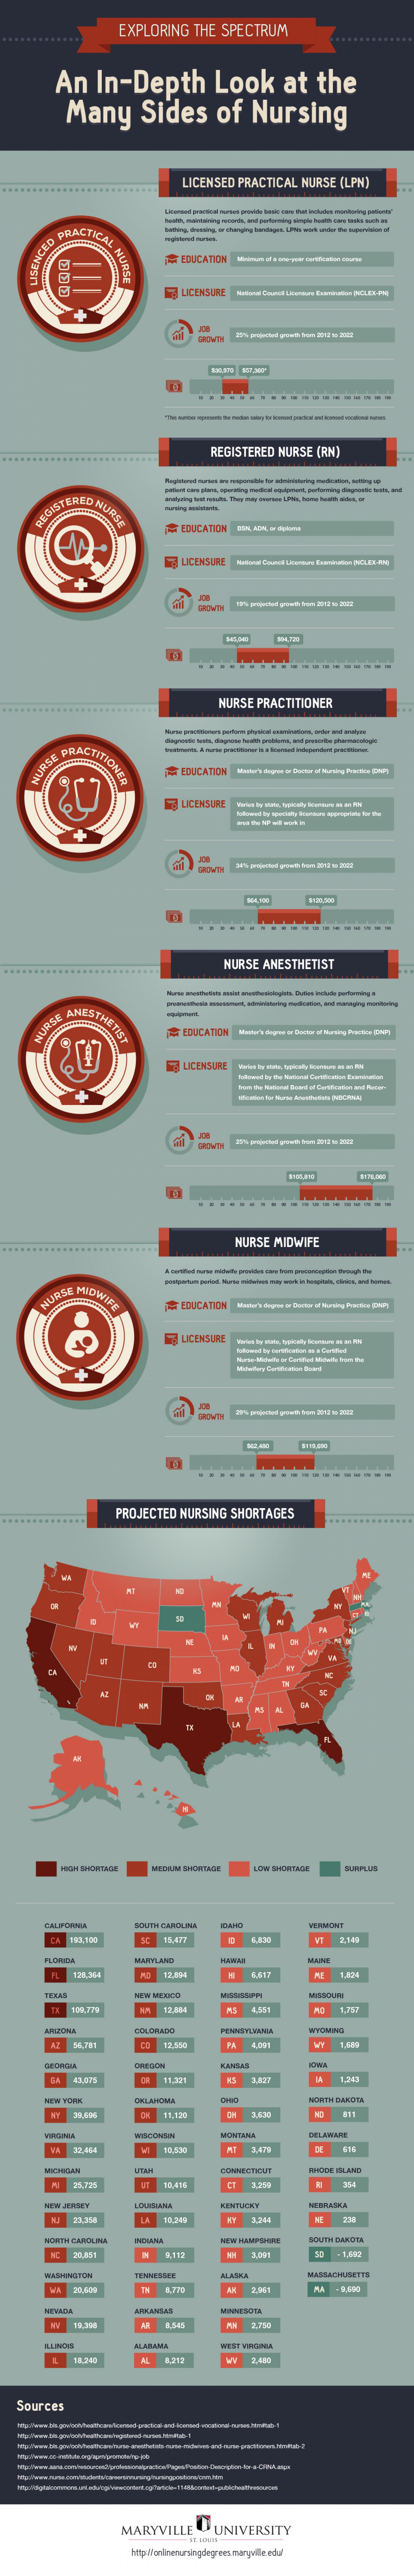 An In Depth Look at the Many Sides of Nursing Infographic